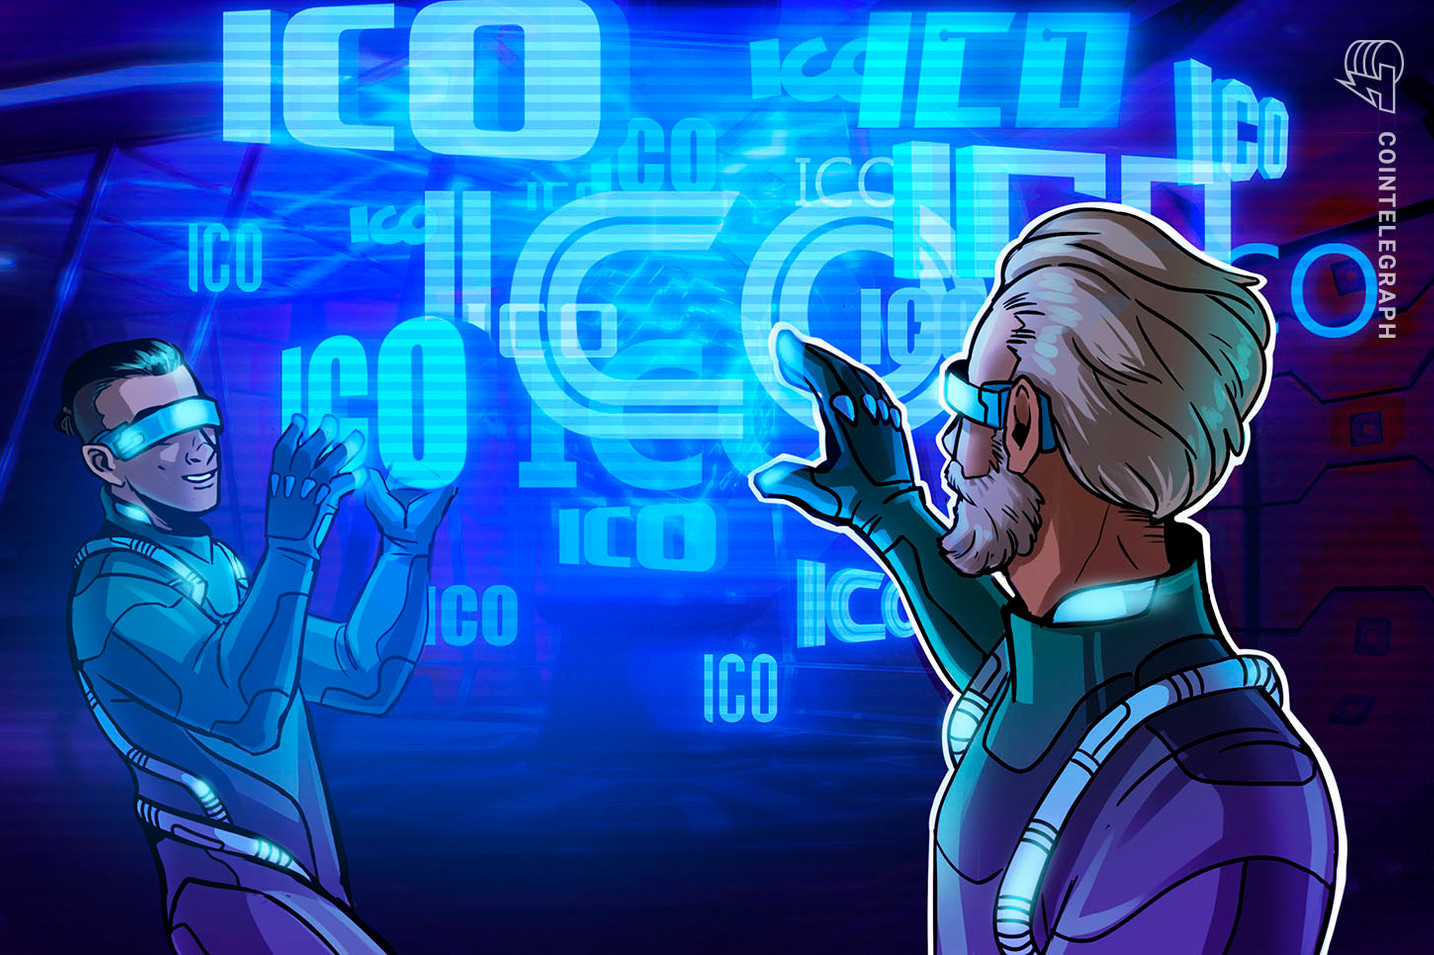 Report: ICO Fundraising Plummeted 95% Year-Over-Year in 2019